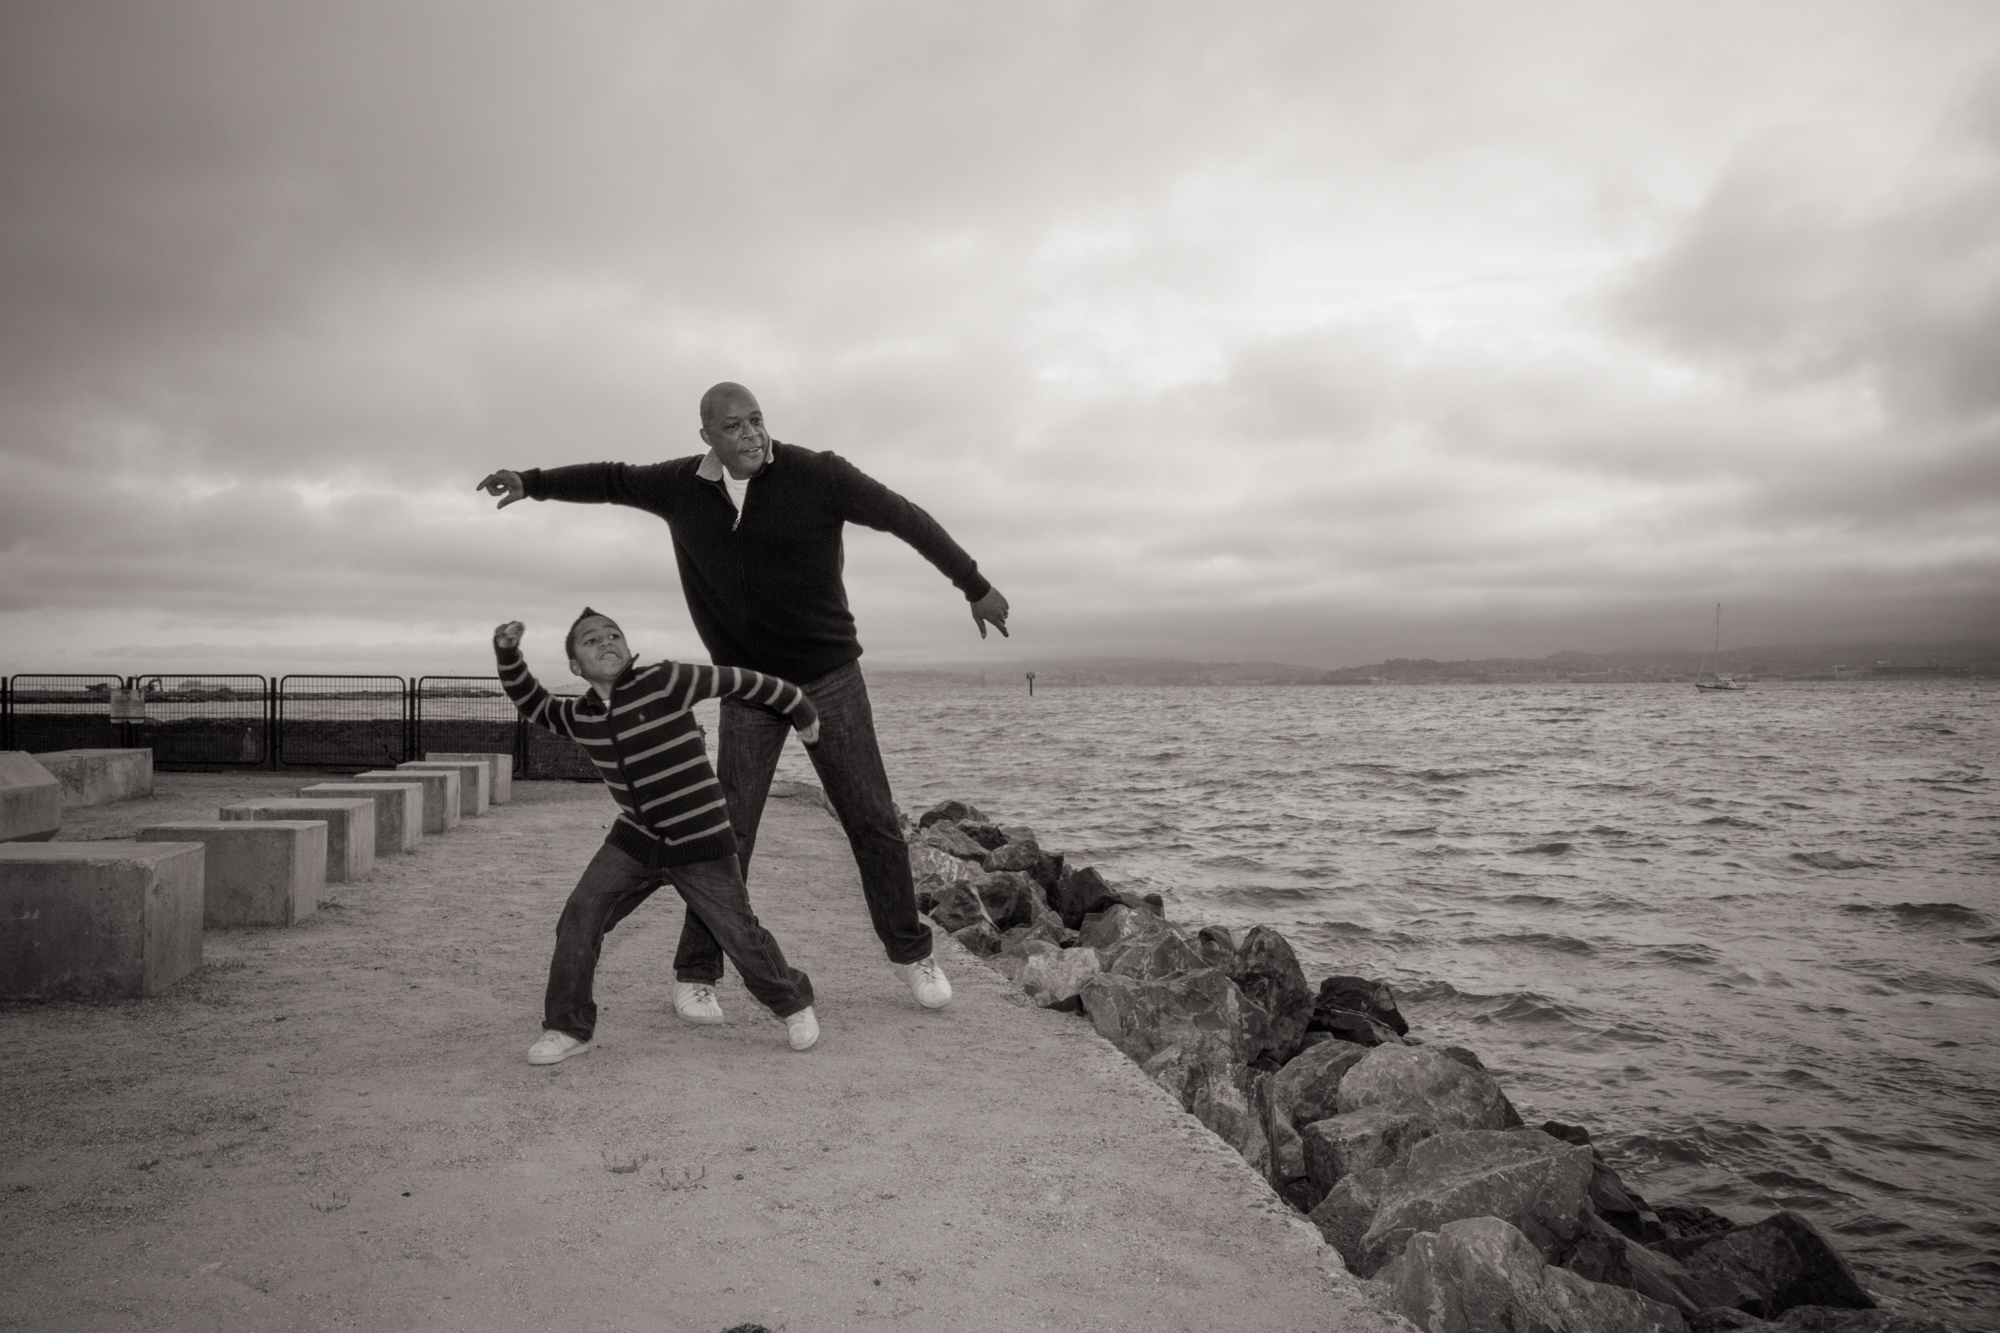 image_father and son_lori fuller photography